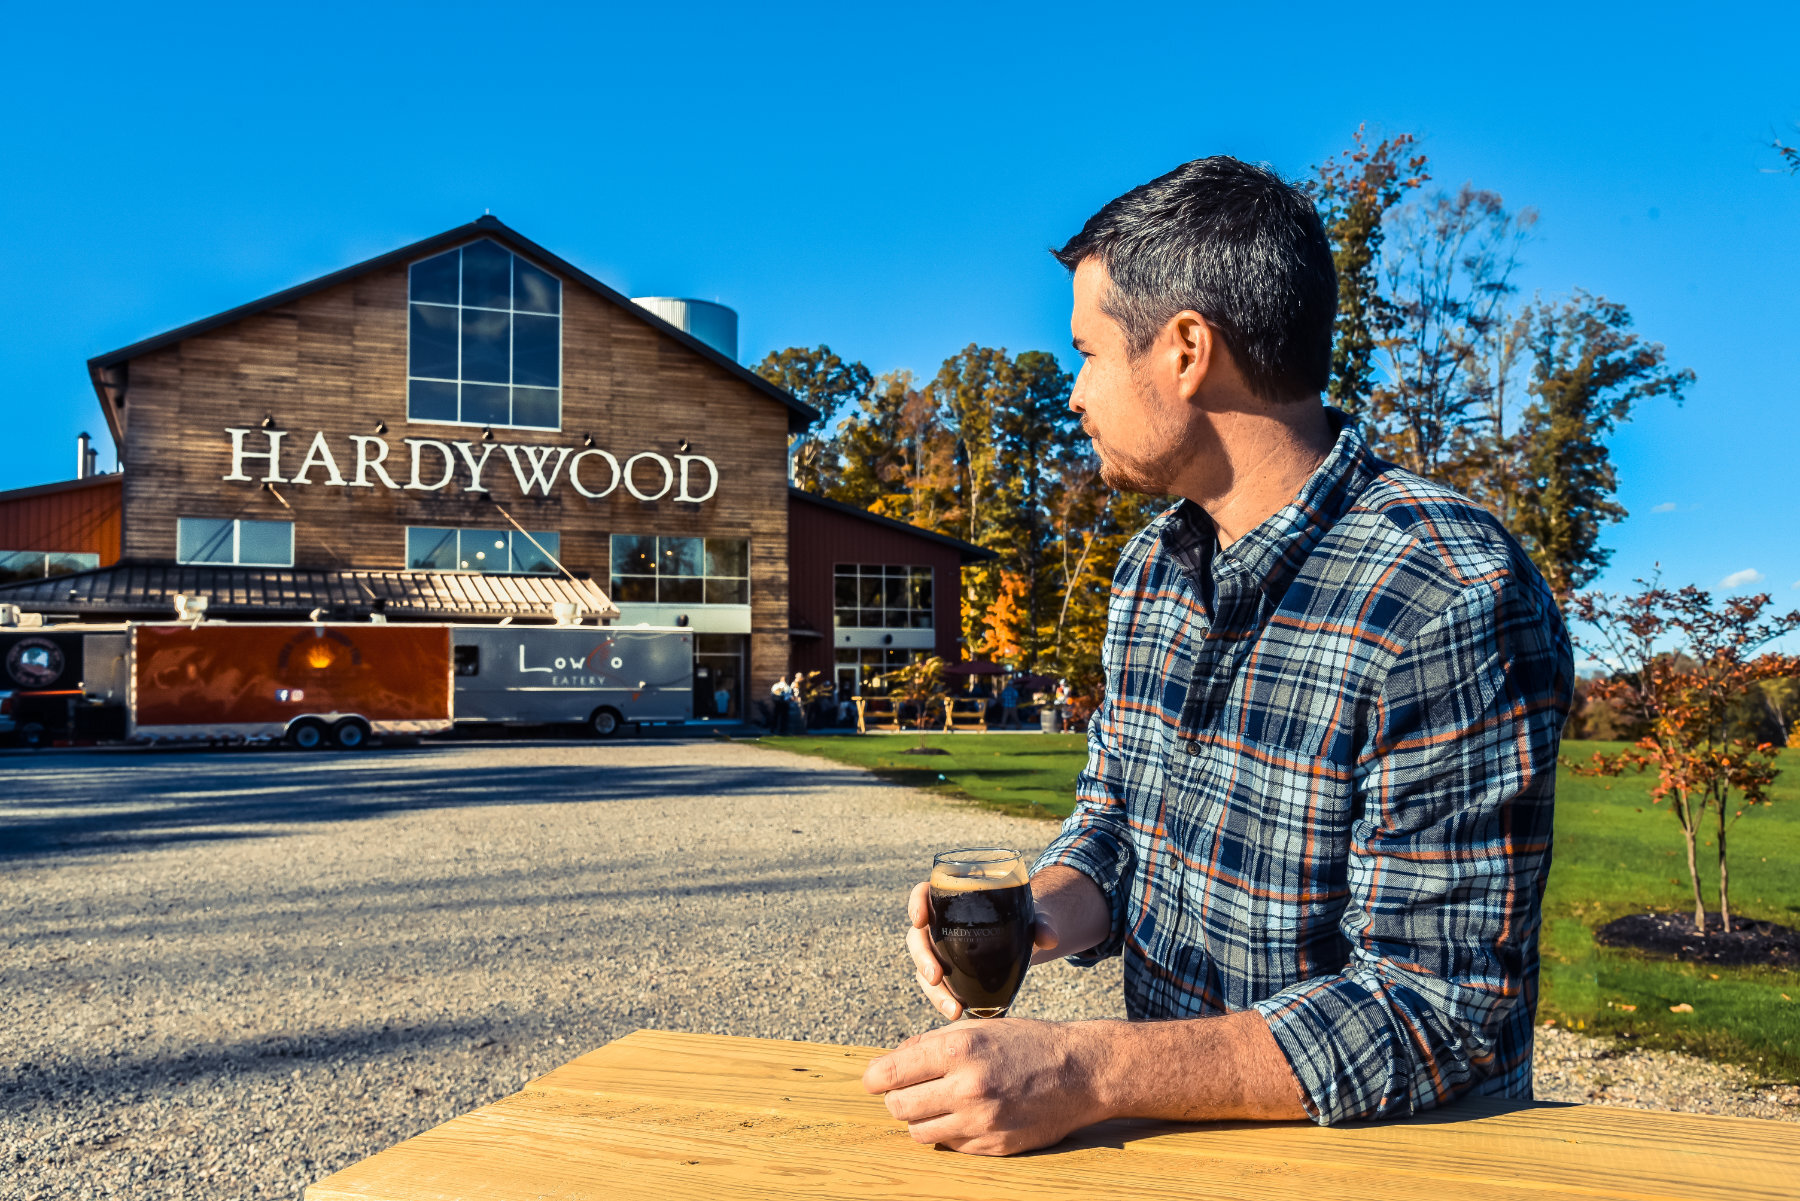 Hardywood Brewery at West Creek is one of our favorite fall spots!